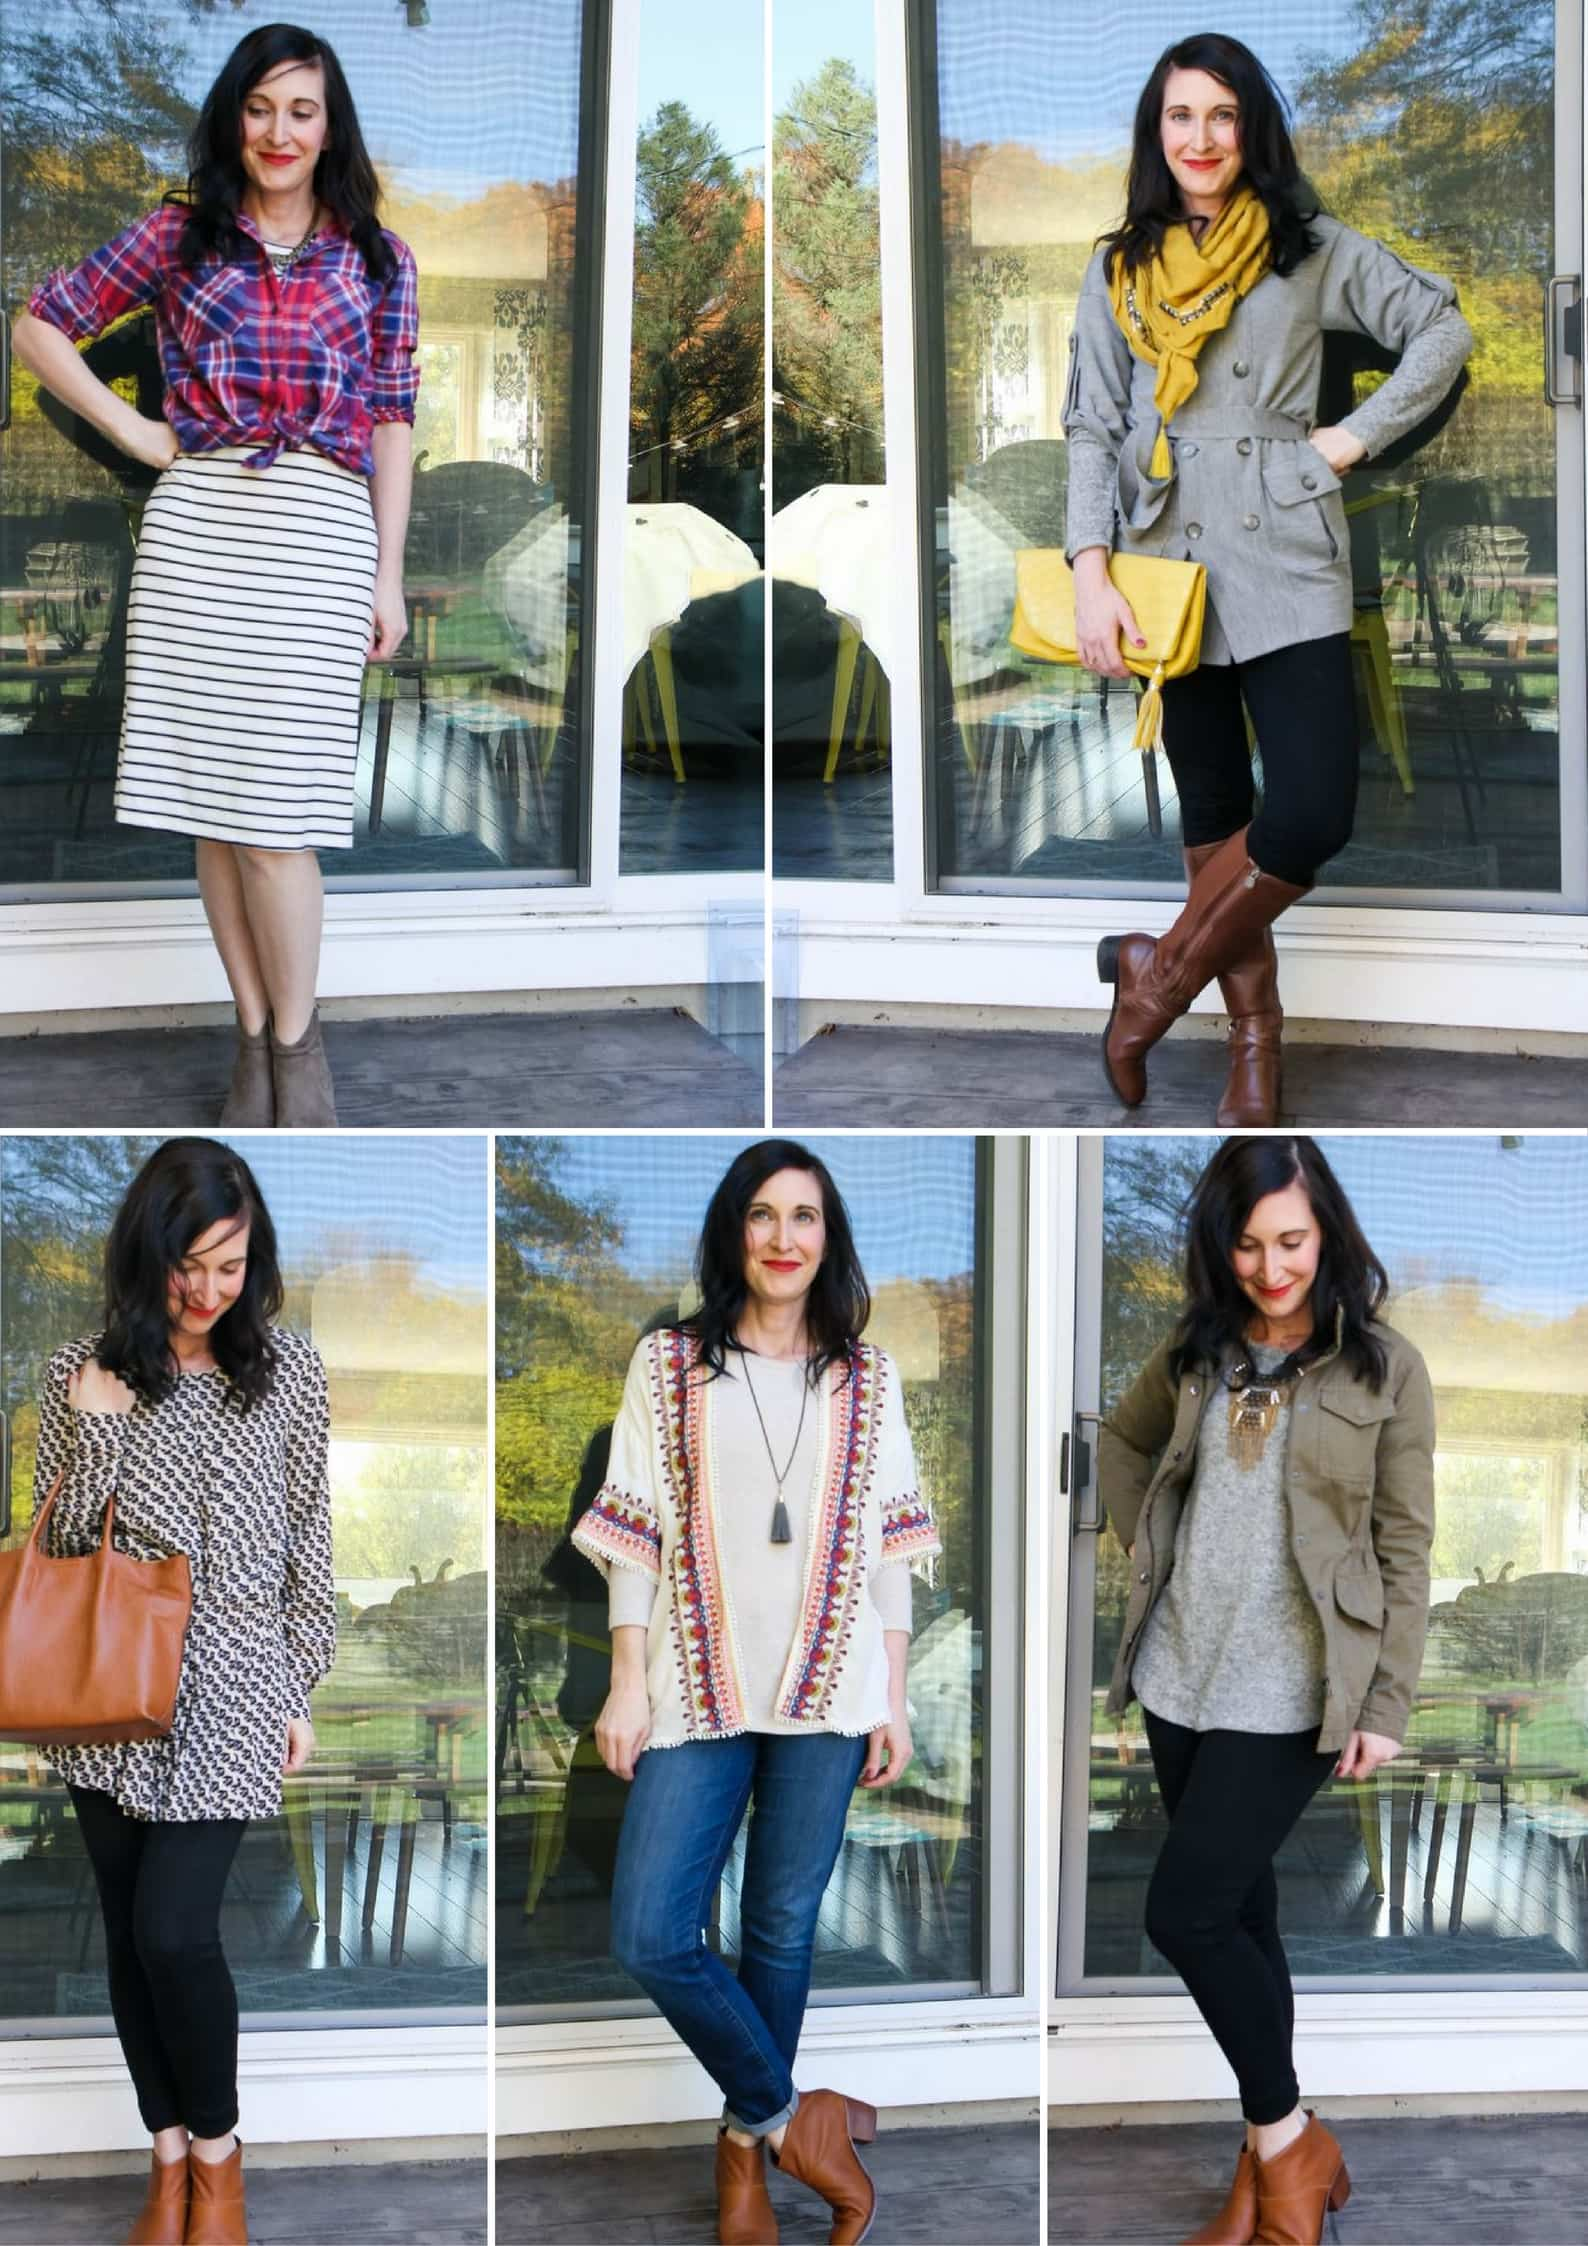 How Capsule Wardrobes Build Confidence